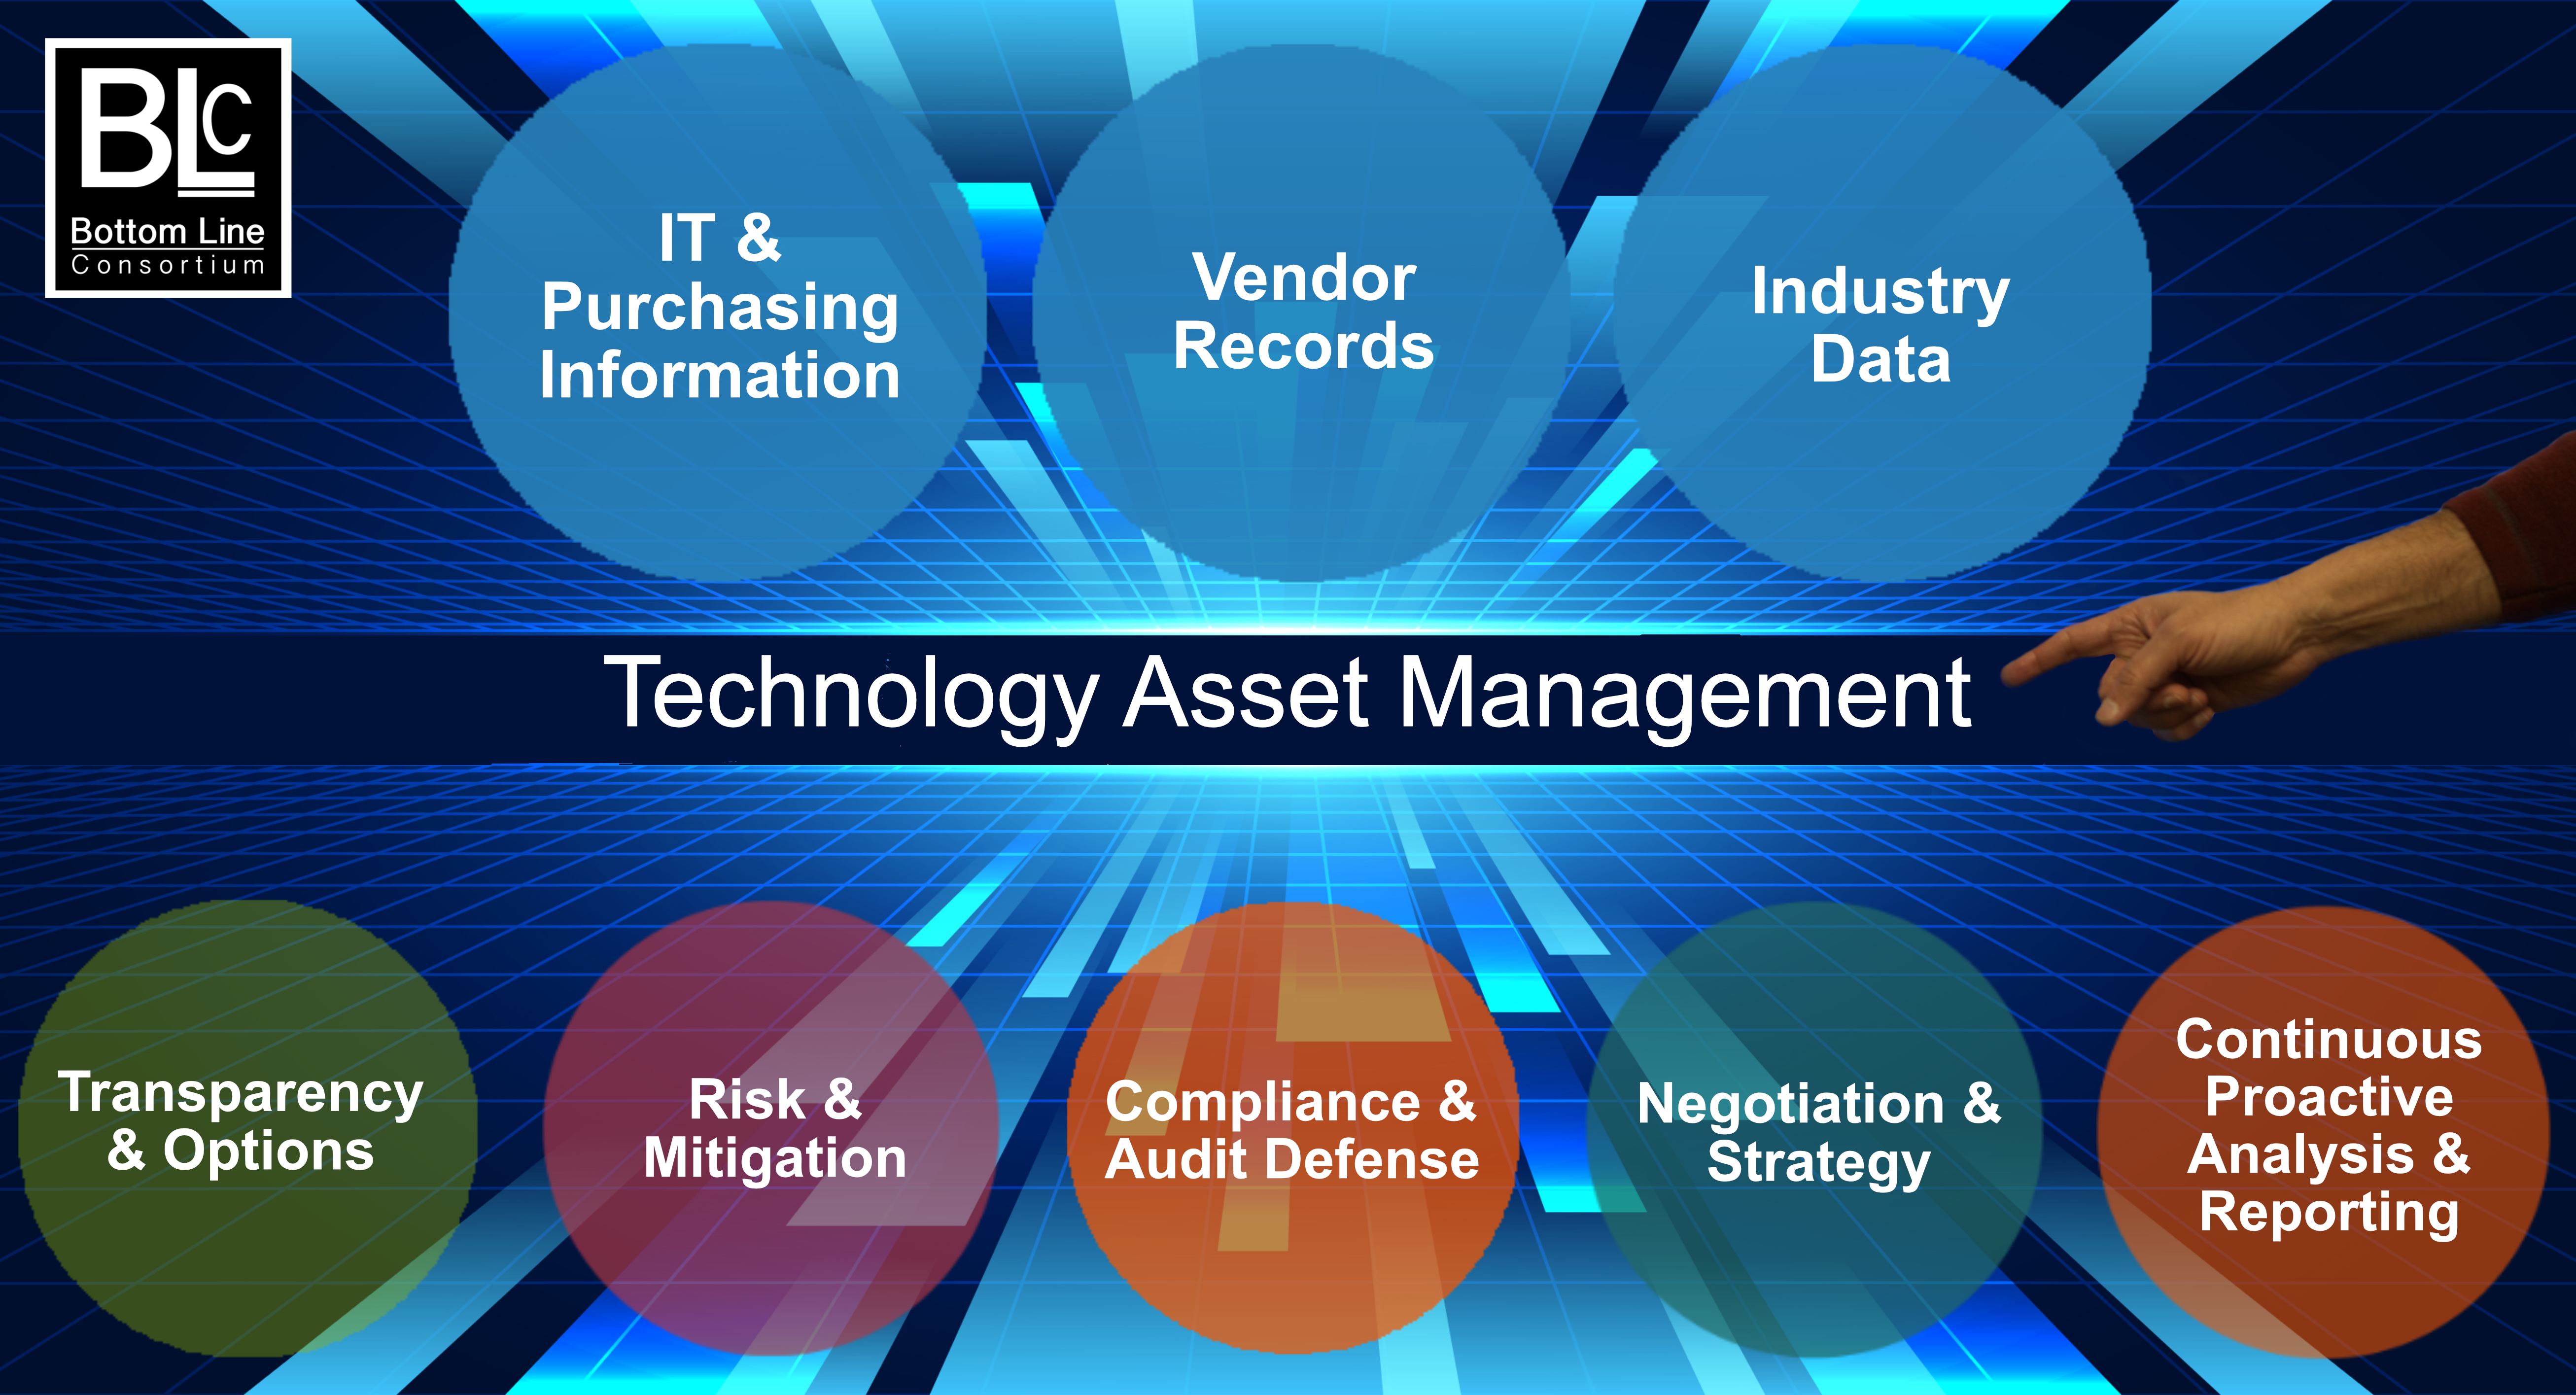 BLC Software Asset Management Service